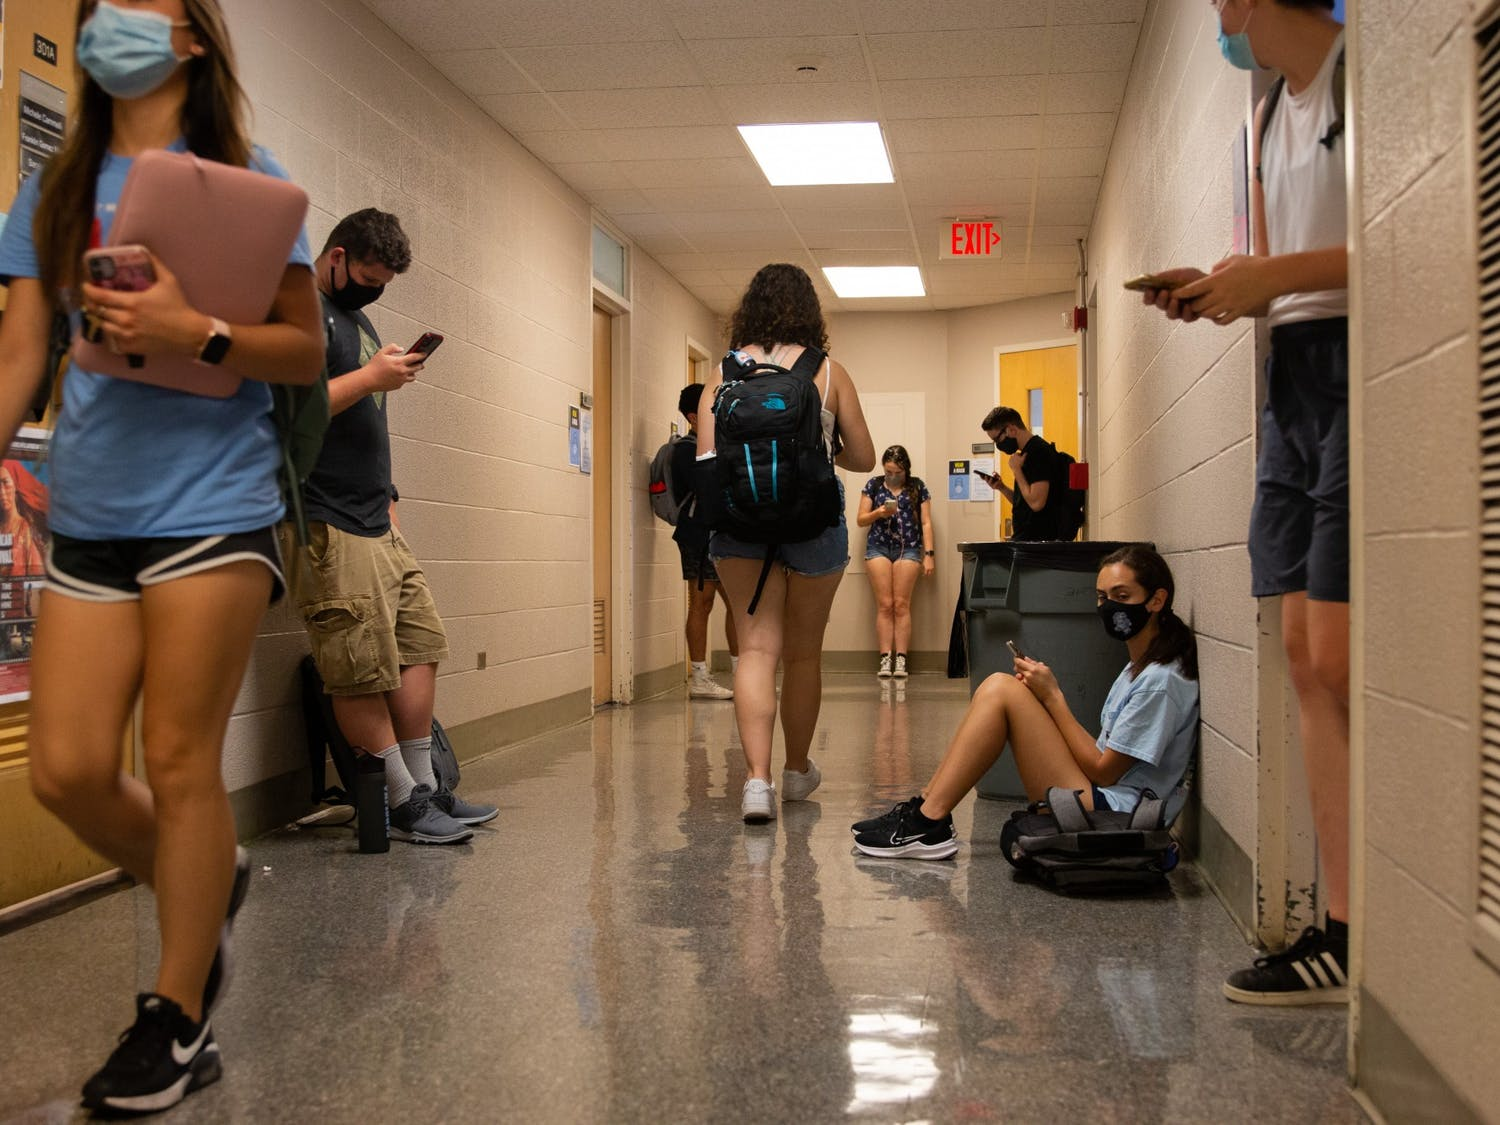 Students move from class to class in Dey Hall on Aug. 30, 2021. As UNC returns to in-person learning, it seems they've reverted the attendance policy---students again have to prove illness or a family situation that falls under University Approved Absence guidelines in order to miss class without penalty.